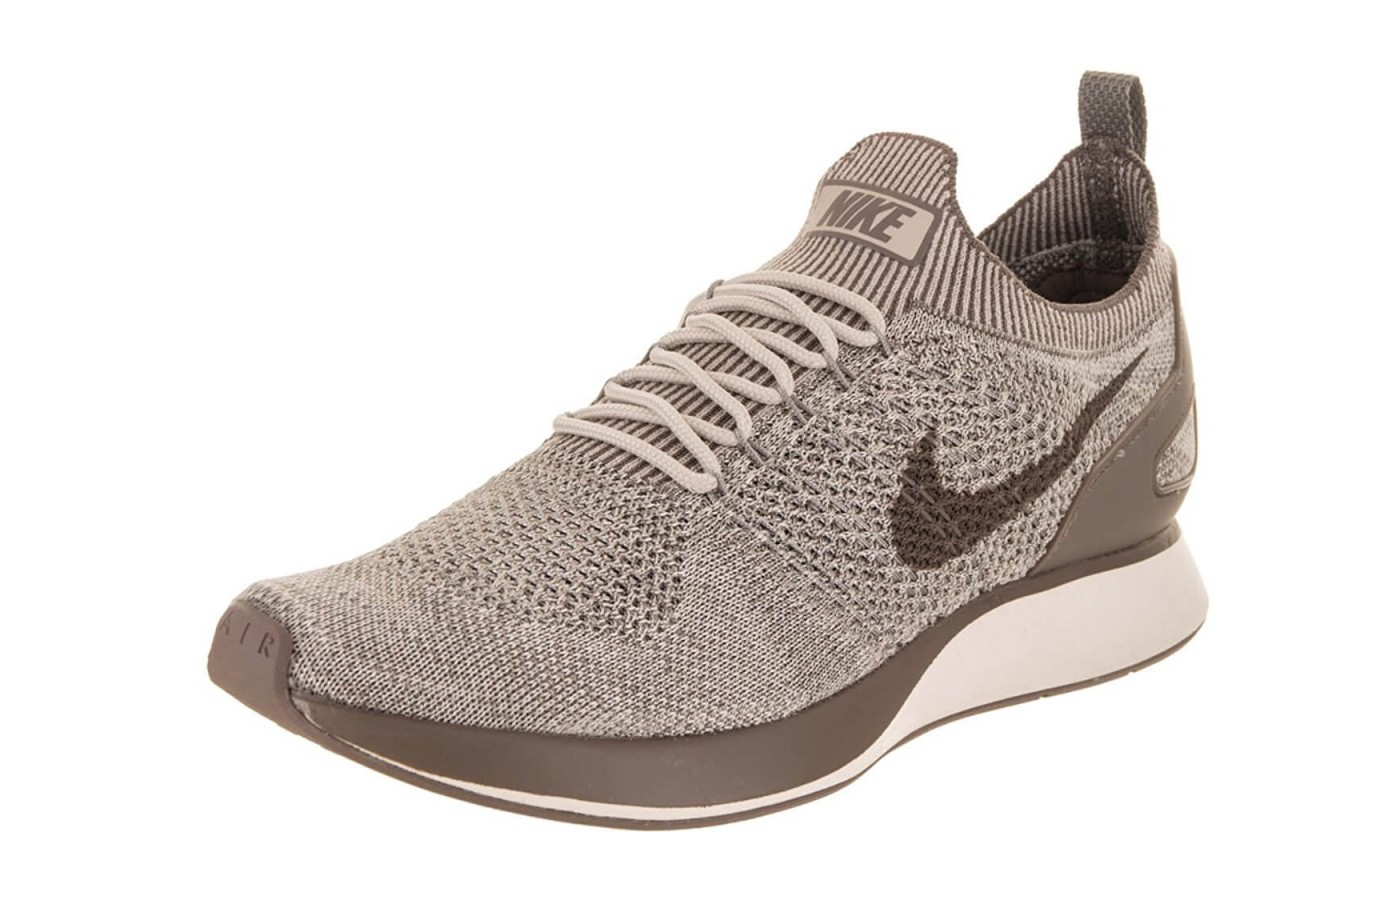 98359a0f4eda The Nike Air Zoom Mariah Flyknit Racer features a breathable Flyknit upper  ...